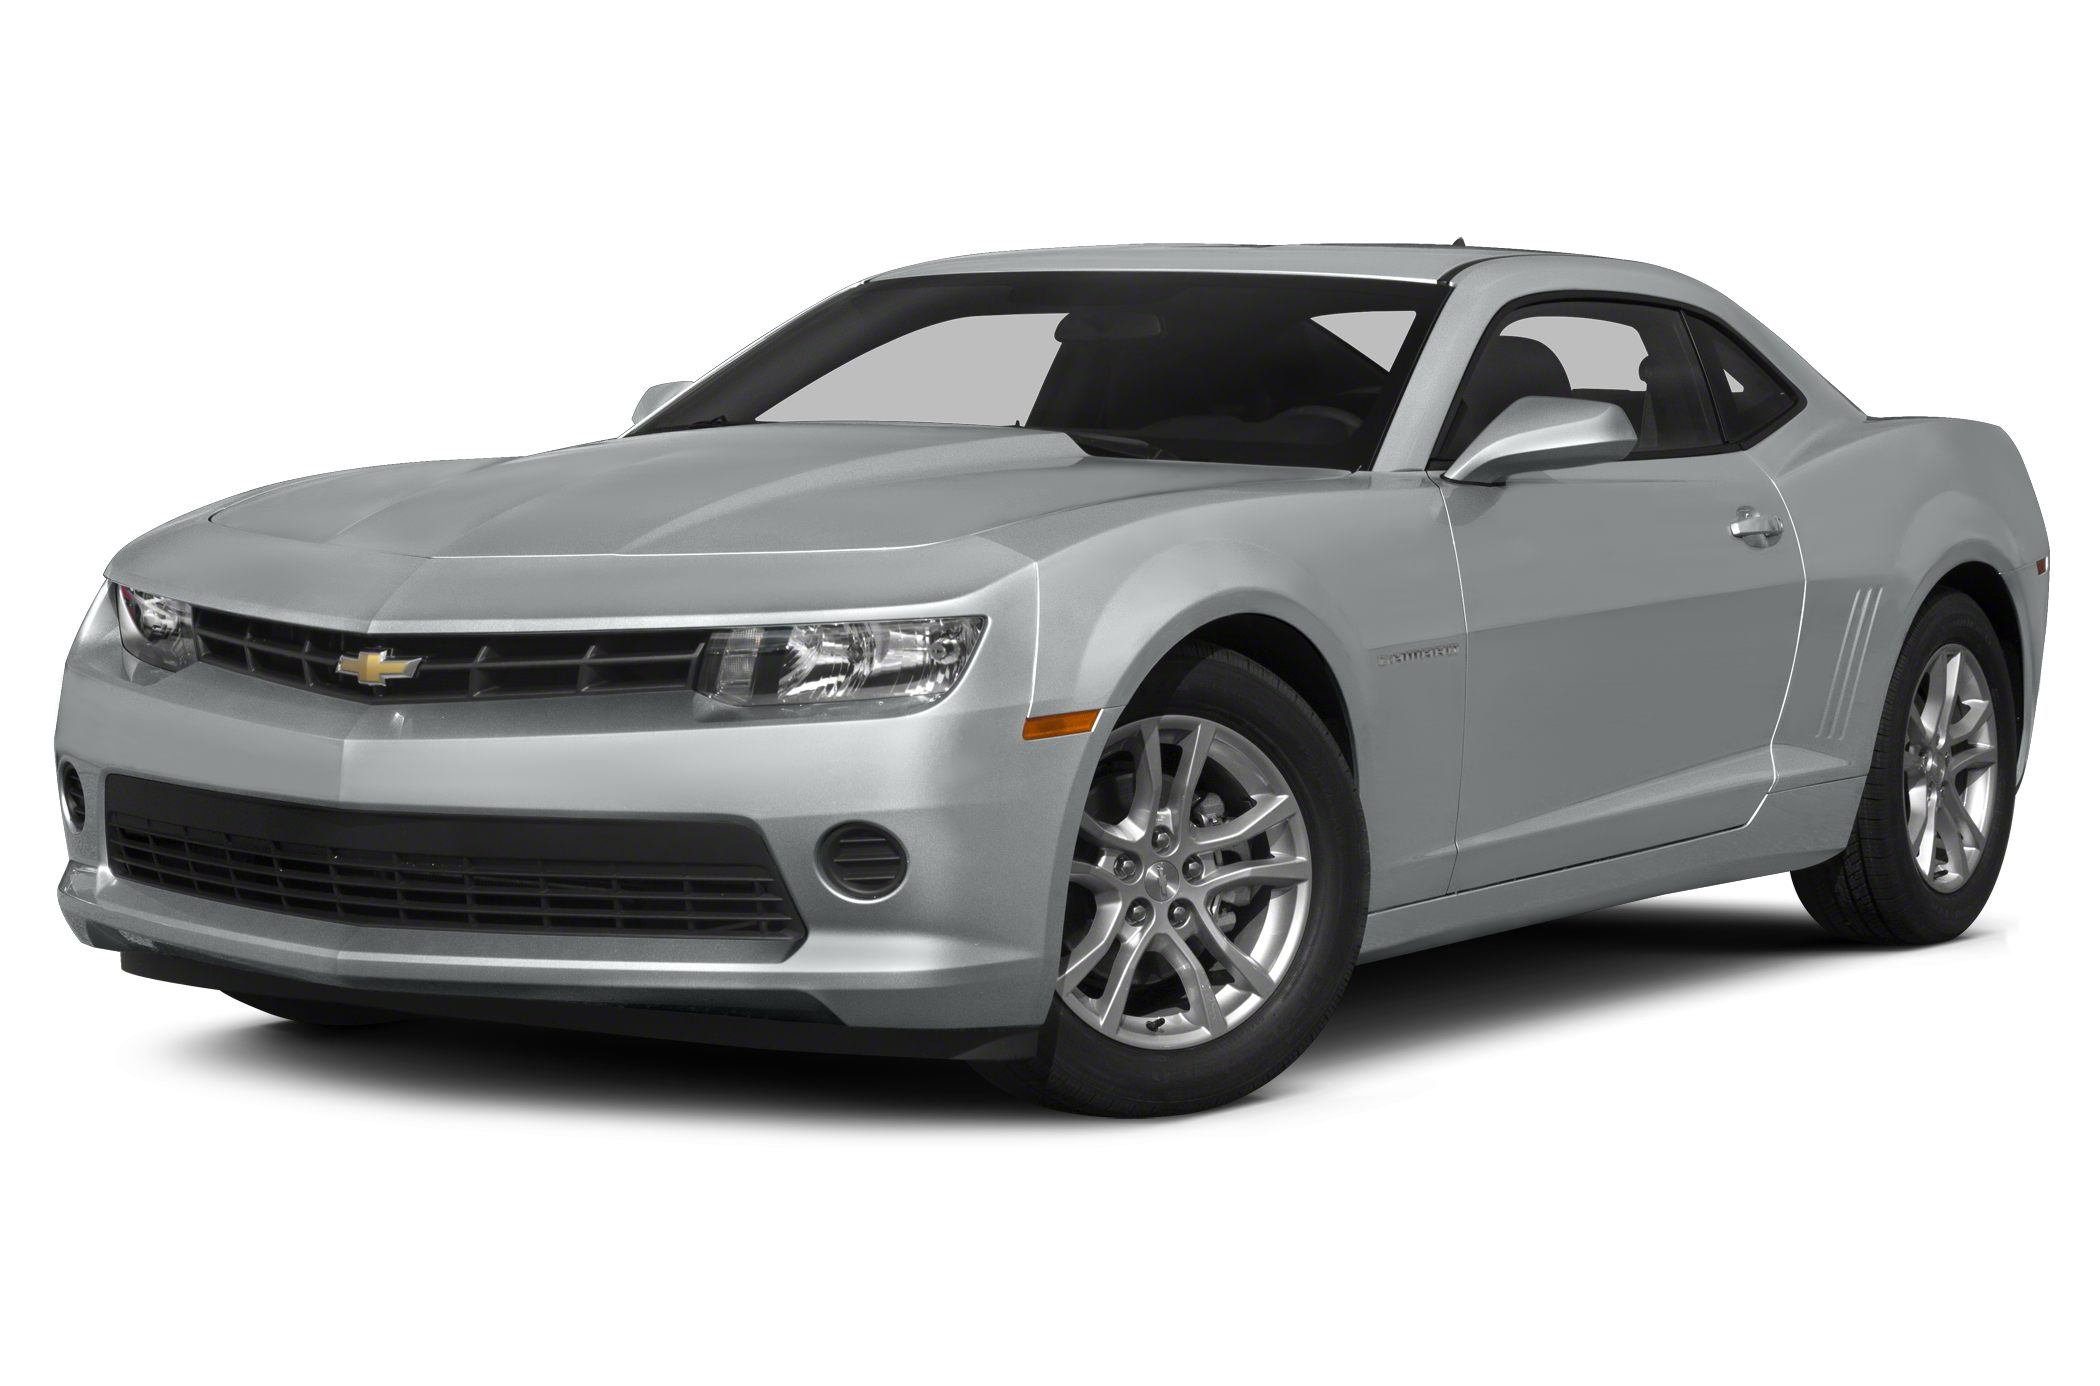 2014 Chevrolet Camaro LT w1LT For more information about this vehicleplease contact Teresa in the